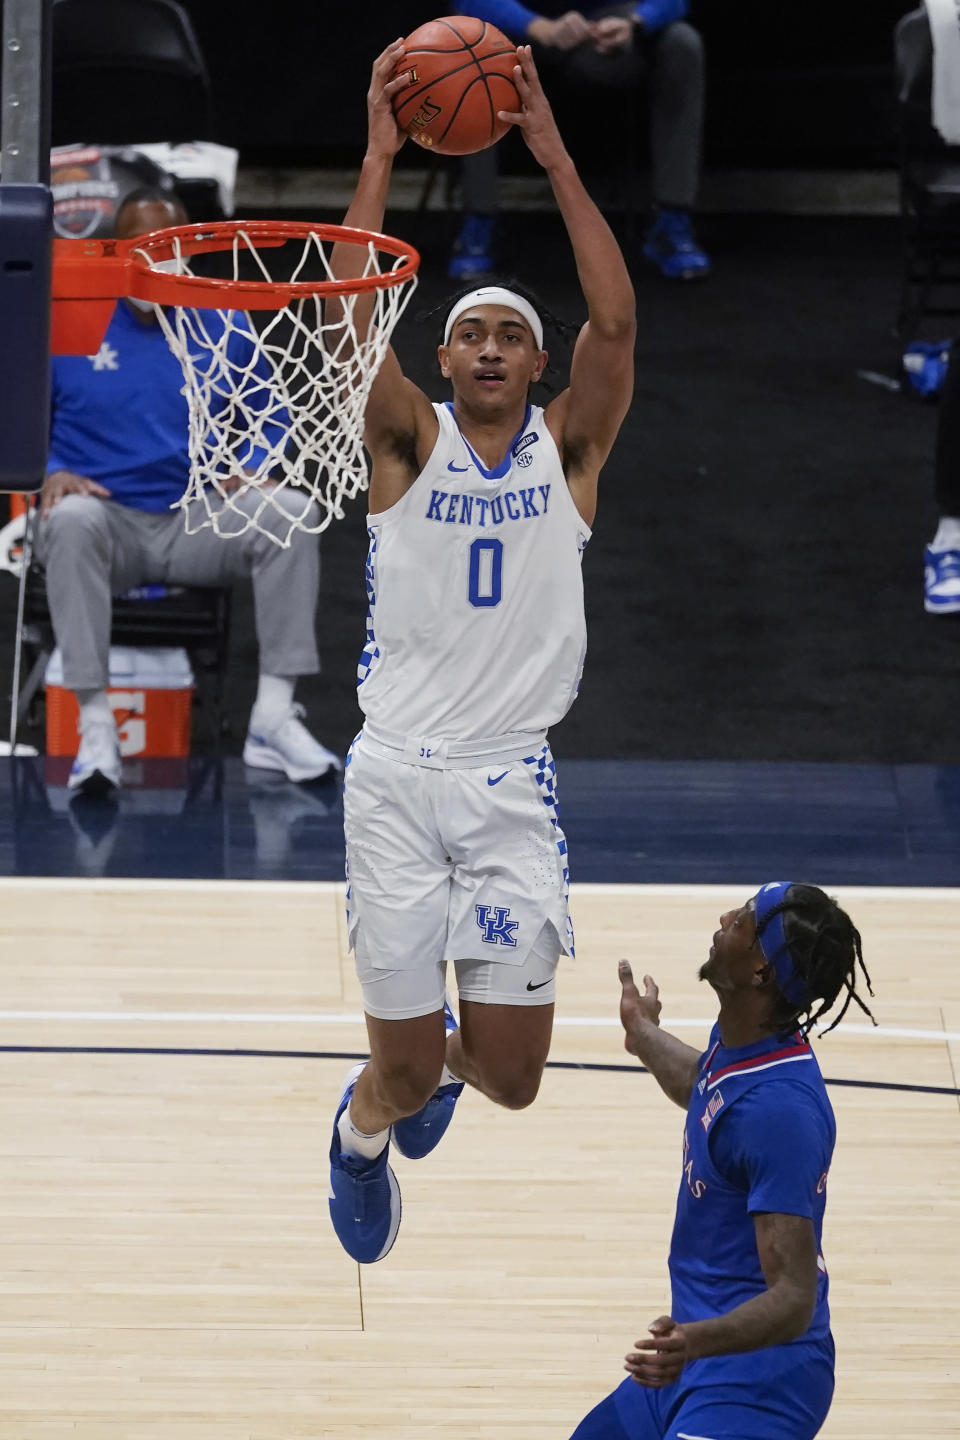 Kentucky's Jacob Toppin (0) goes to the basket against Kansas' Marcus Garrett (0) during the second half of an NCAA college basketball game Tuesday, Dec. 1, 2020, in Indianapolis. (AP Photo/Darron Cummings)